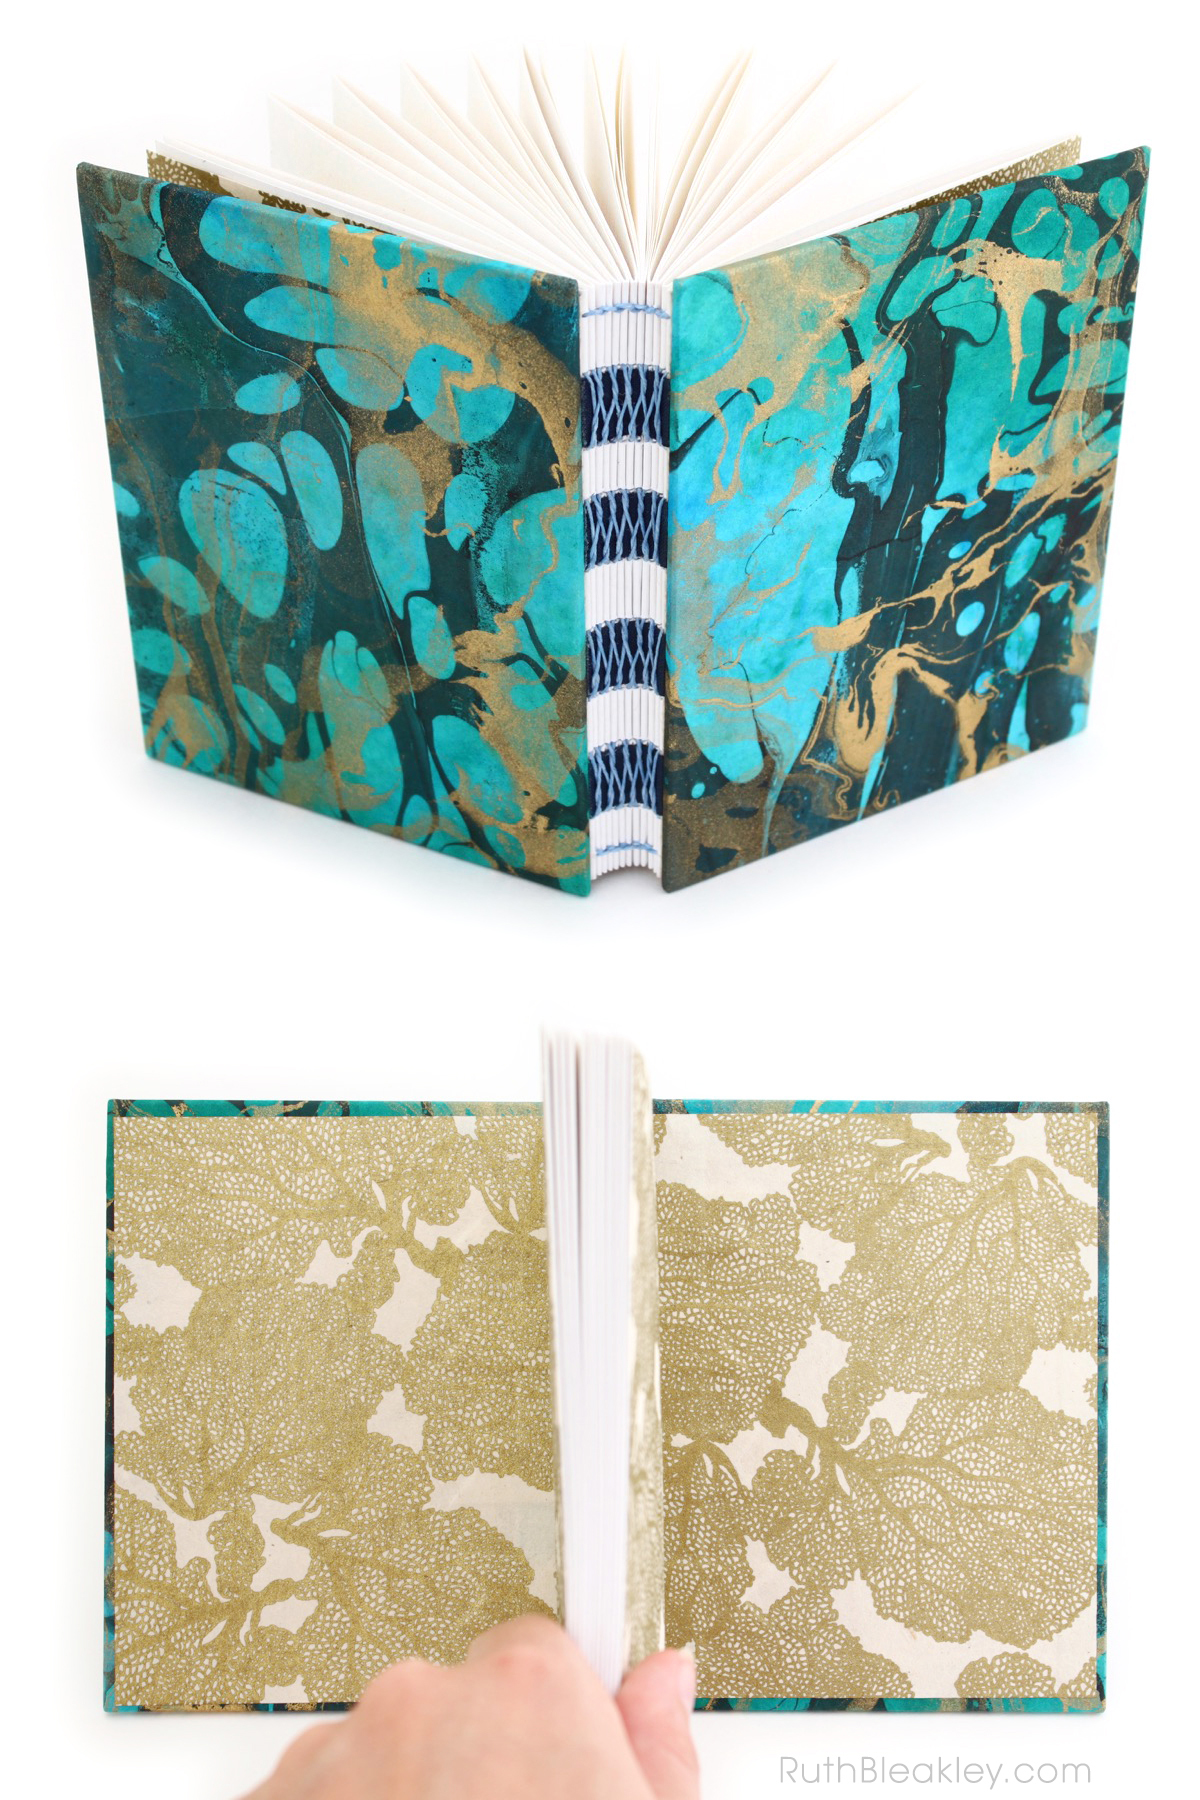 Unlined Handmade Journal with Marbled Covers by Ruth Bleakley